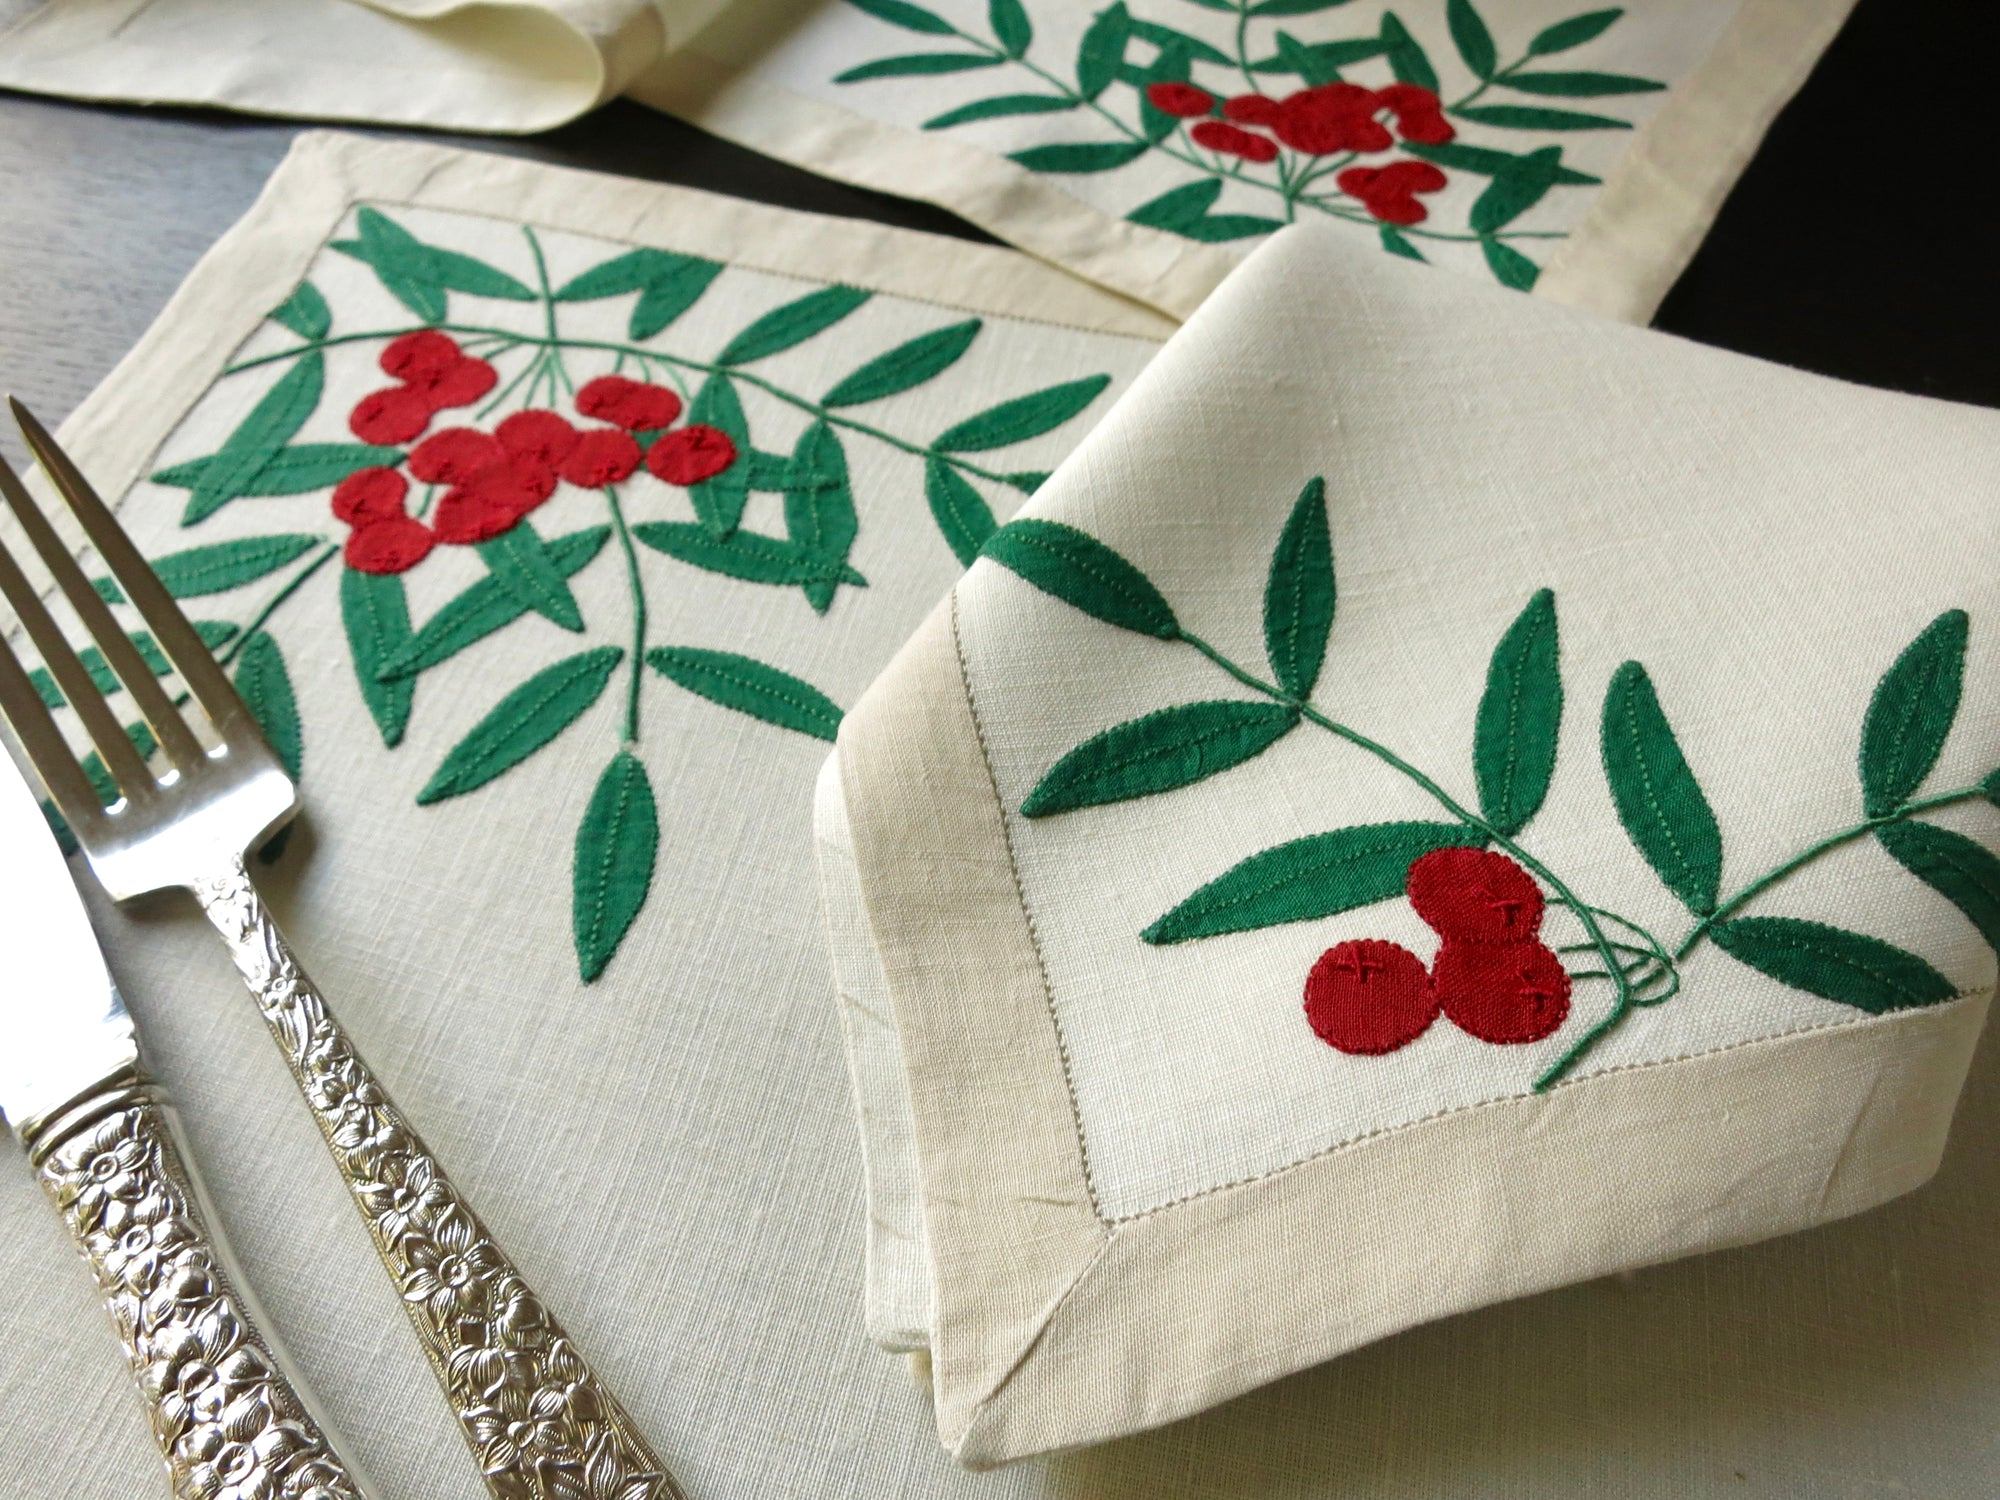 Christmas Holly Vintage Madeira Embroidery 17pc Linen Placemat Setting for 8